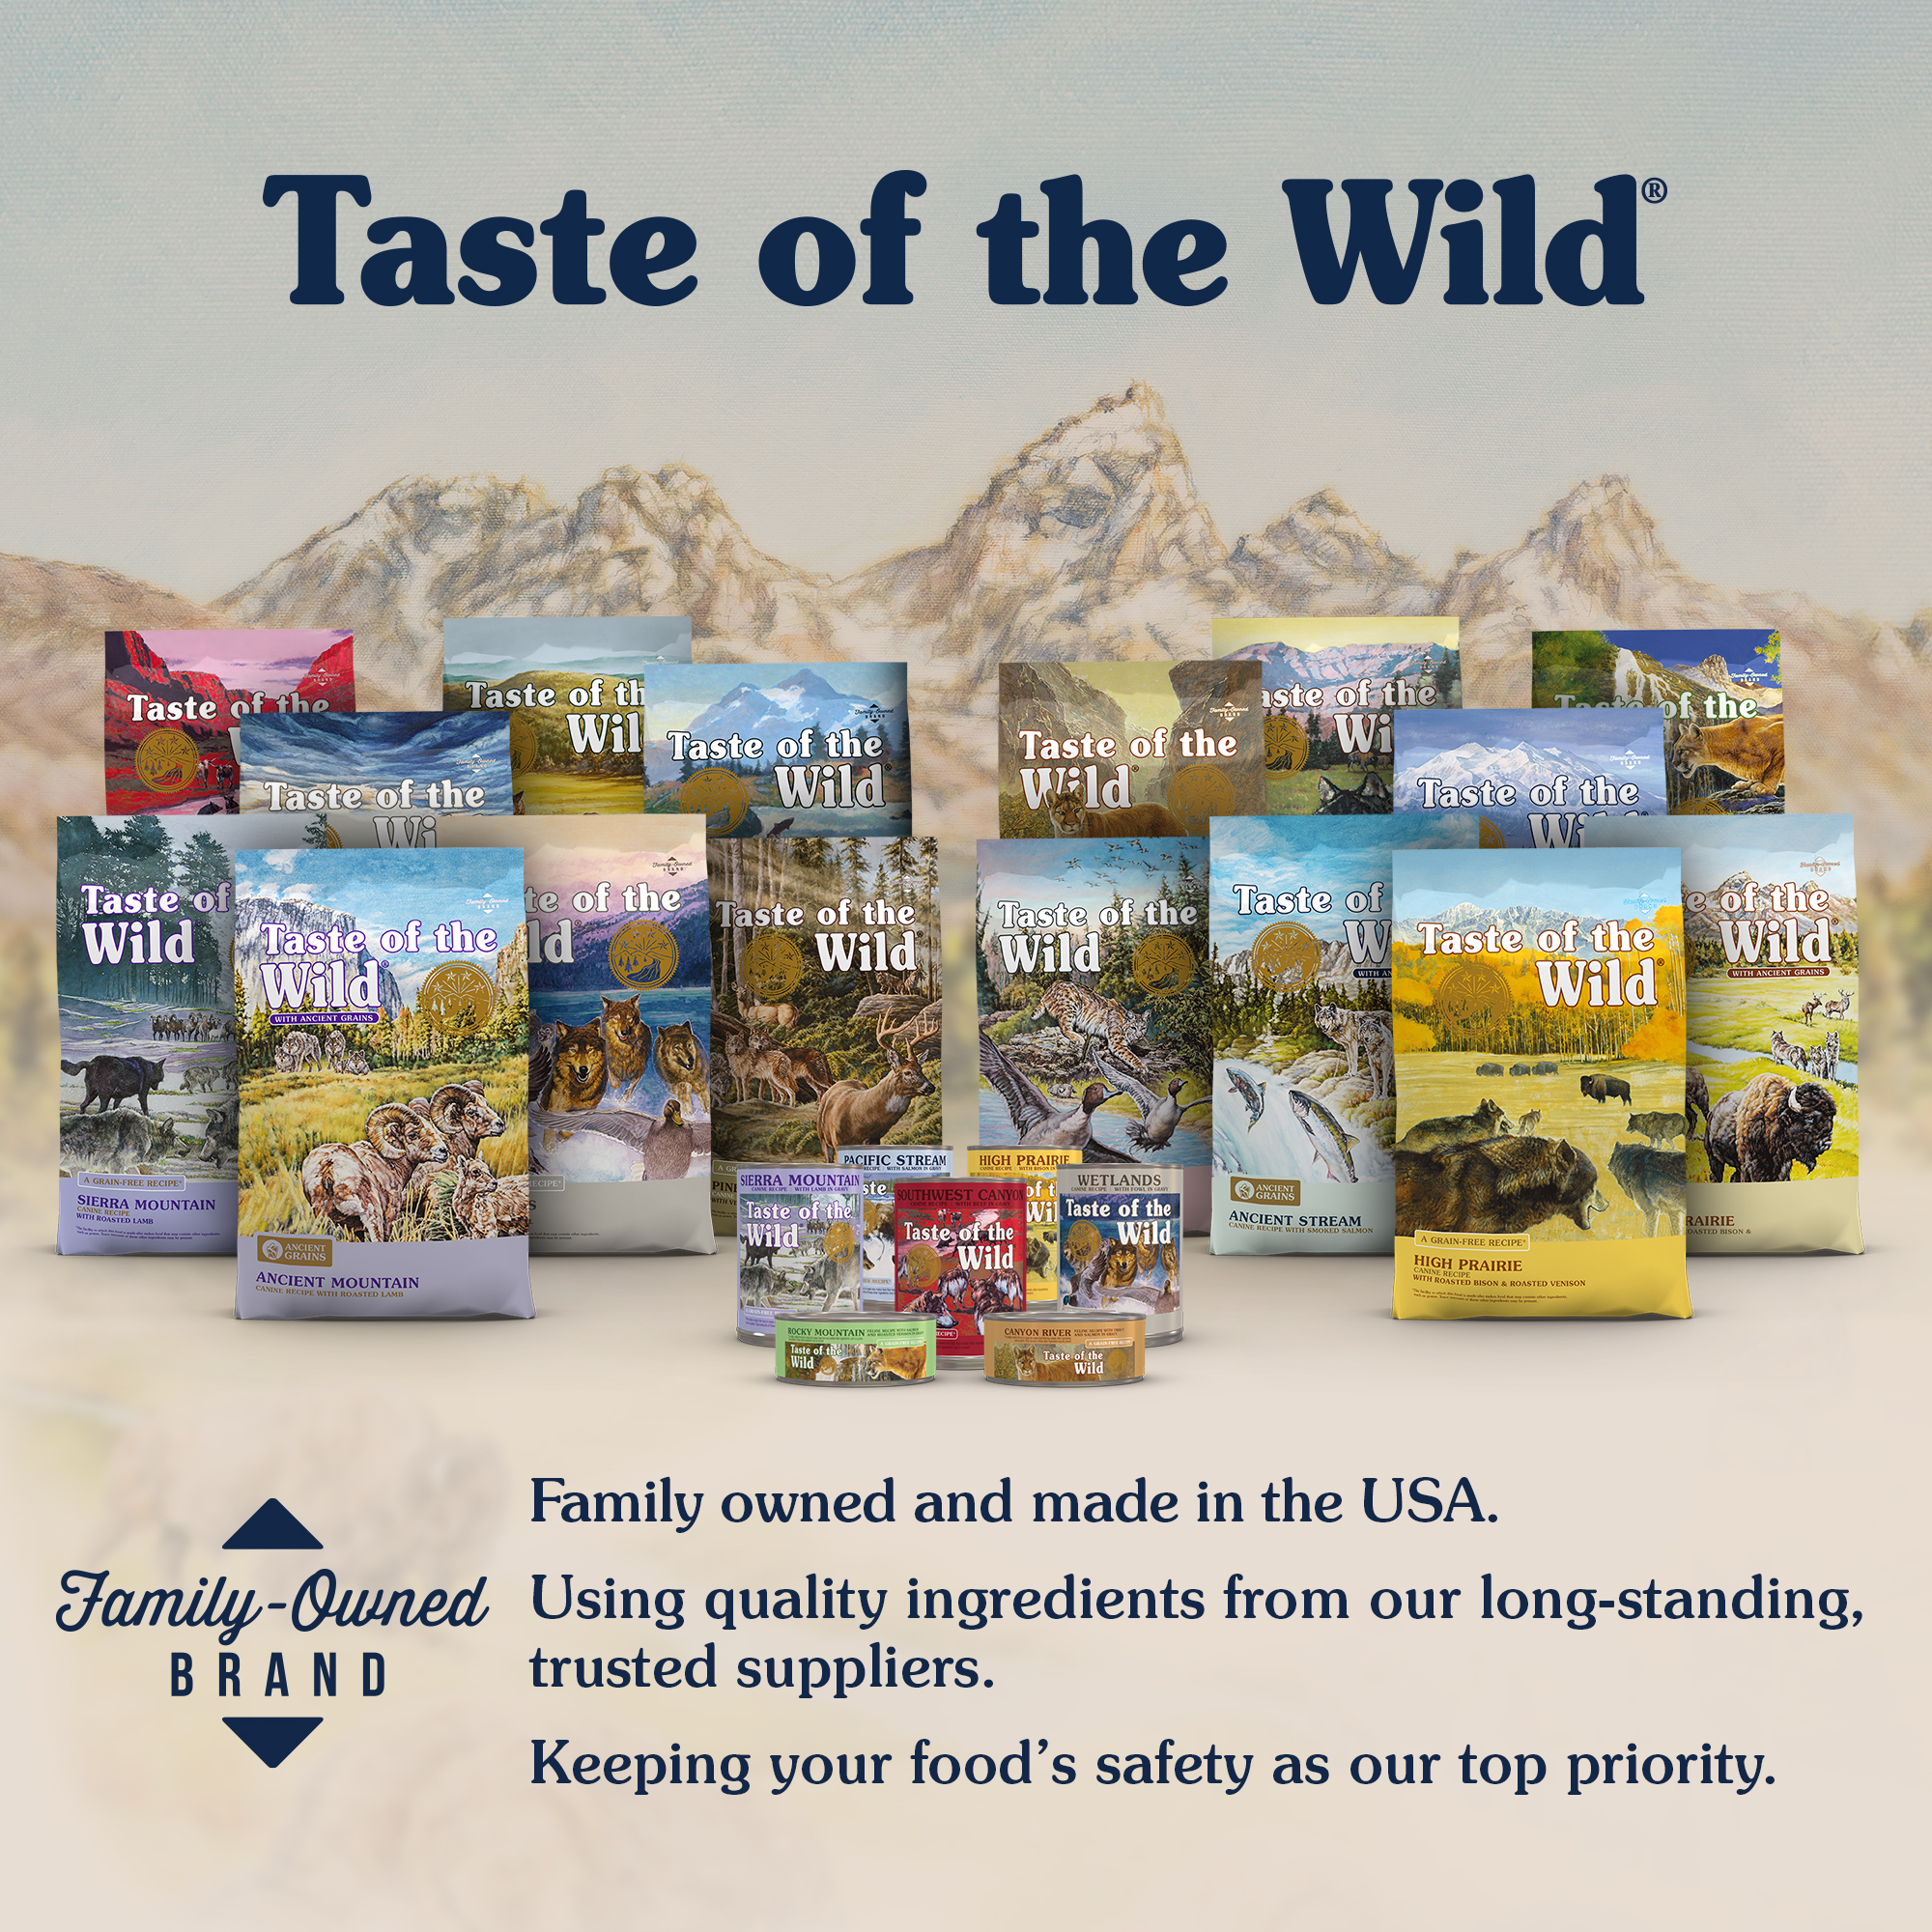 Bags and Cans of Taste of the Wild Pet Food | Taste of the Wild